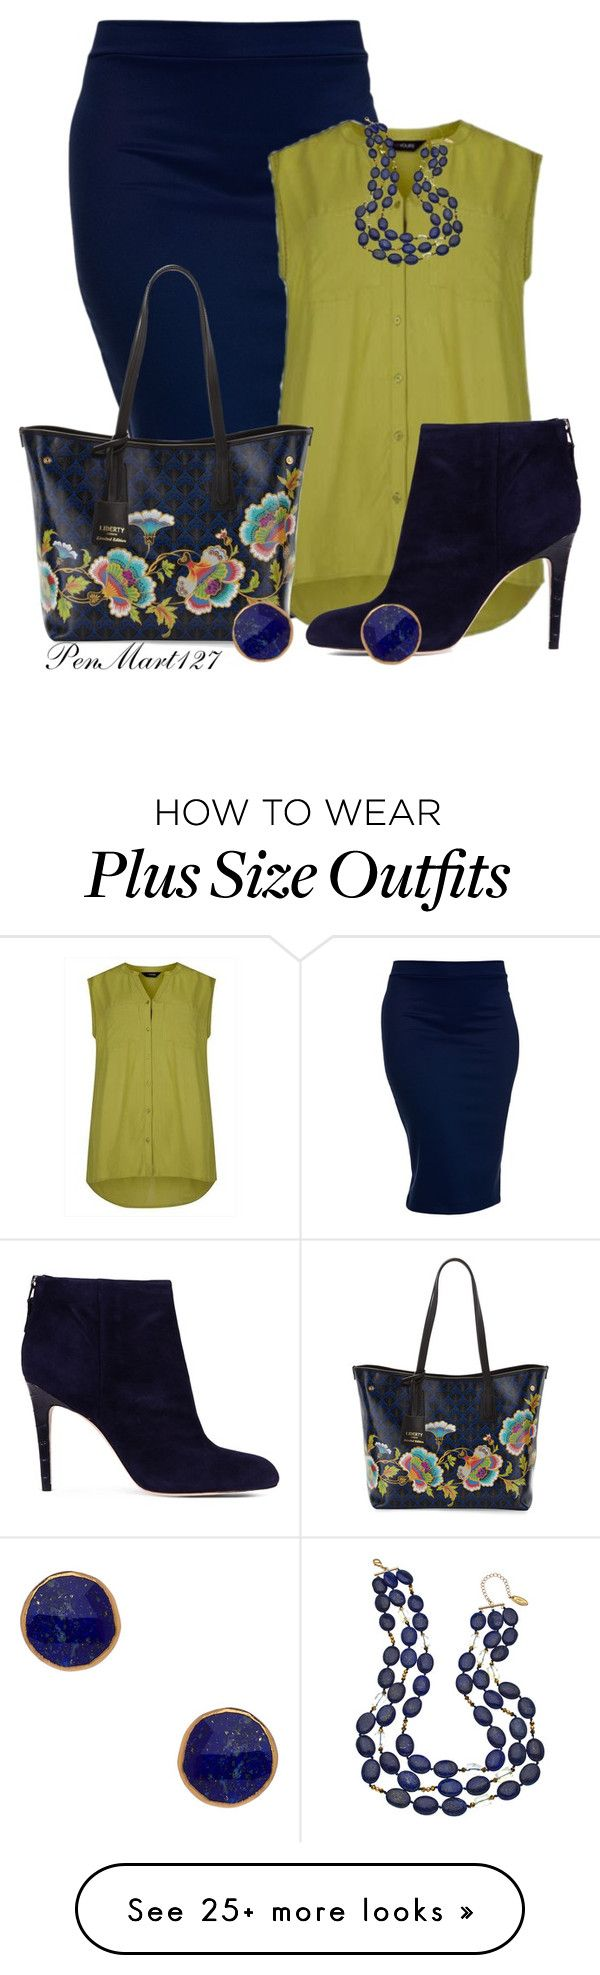 """""""Pencil Skirt #Plussize"""" by penny-martin on Polyvore featuring Liberty, Sam Edelman, Gottex and Janna Conner Designs"""